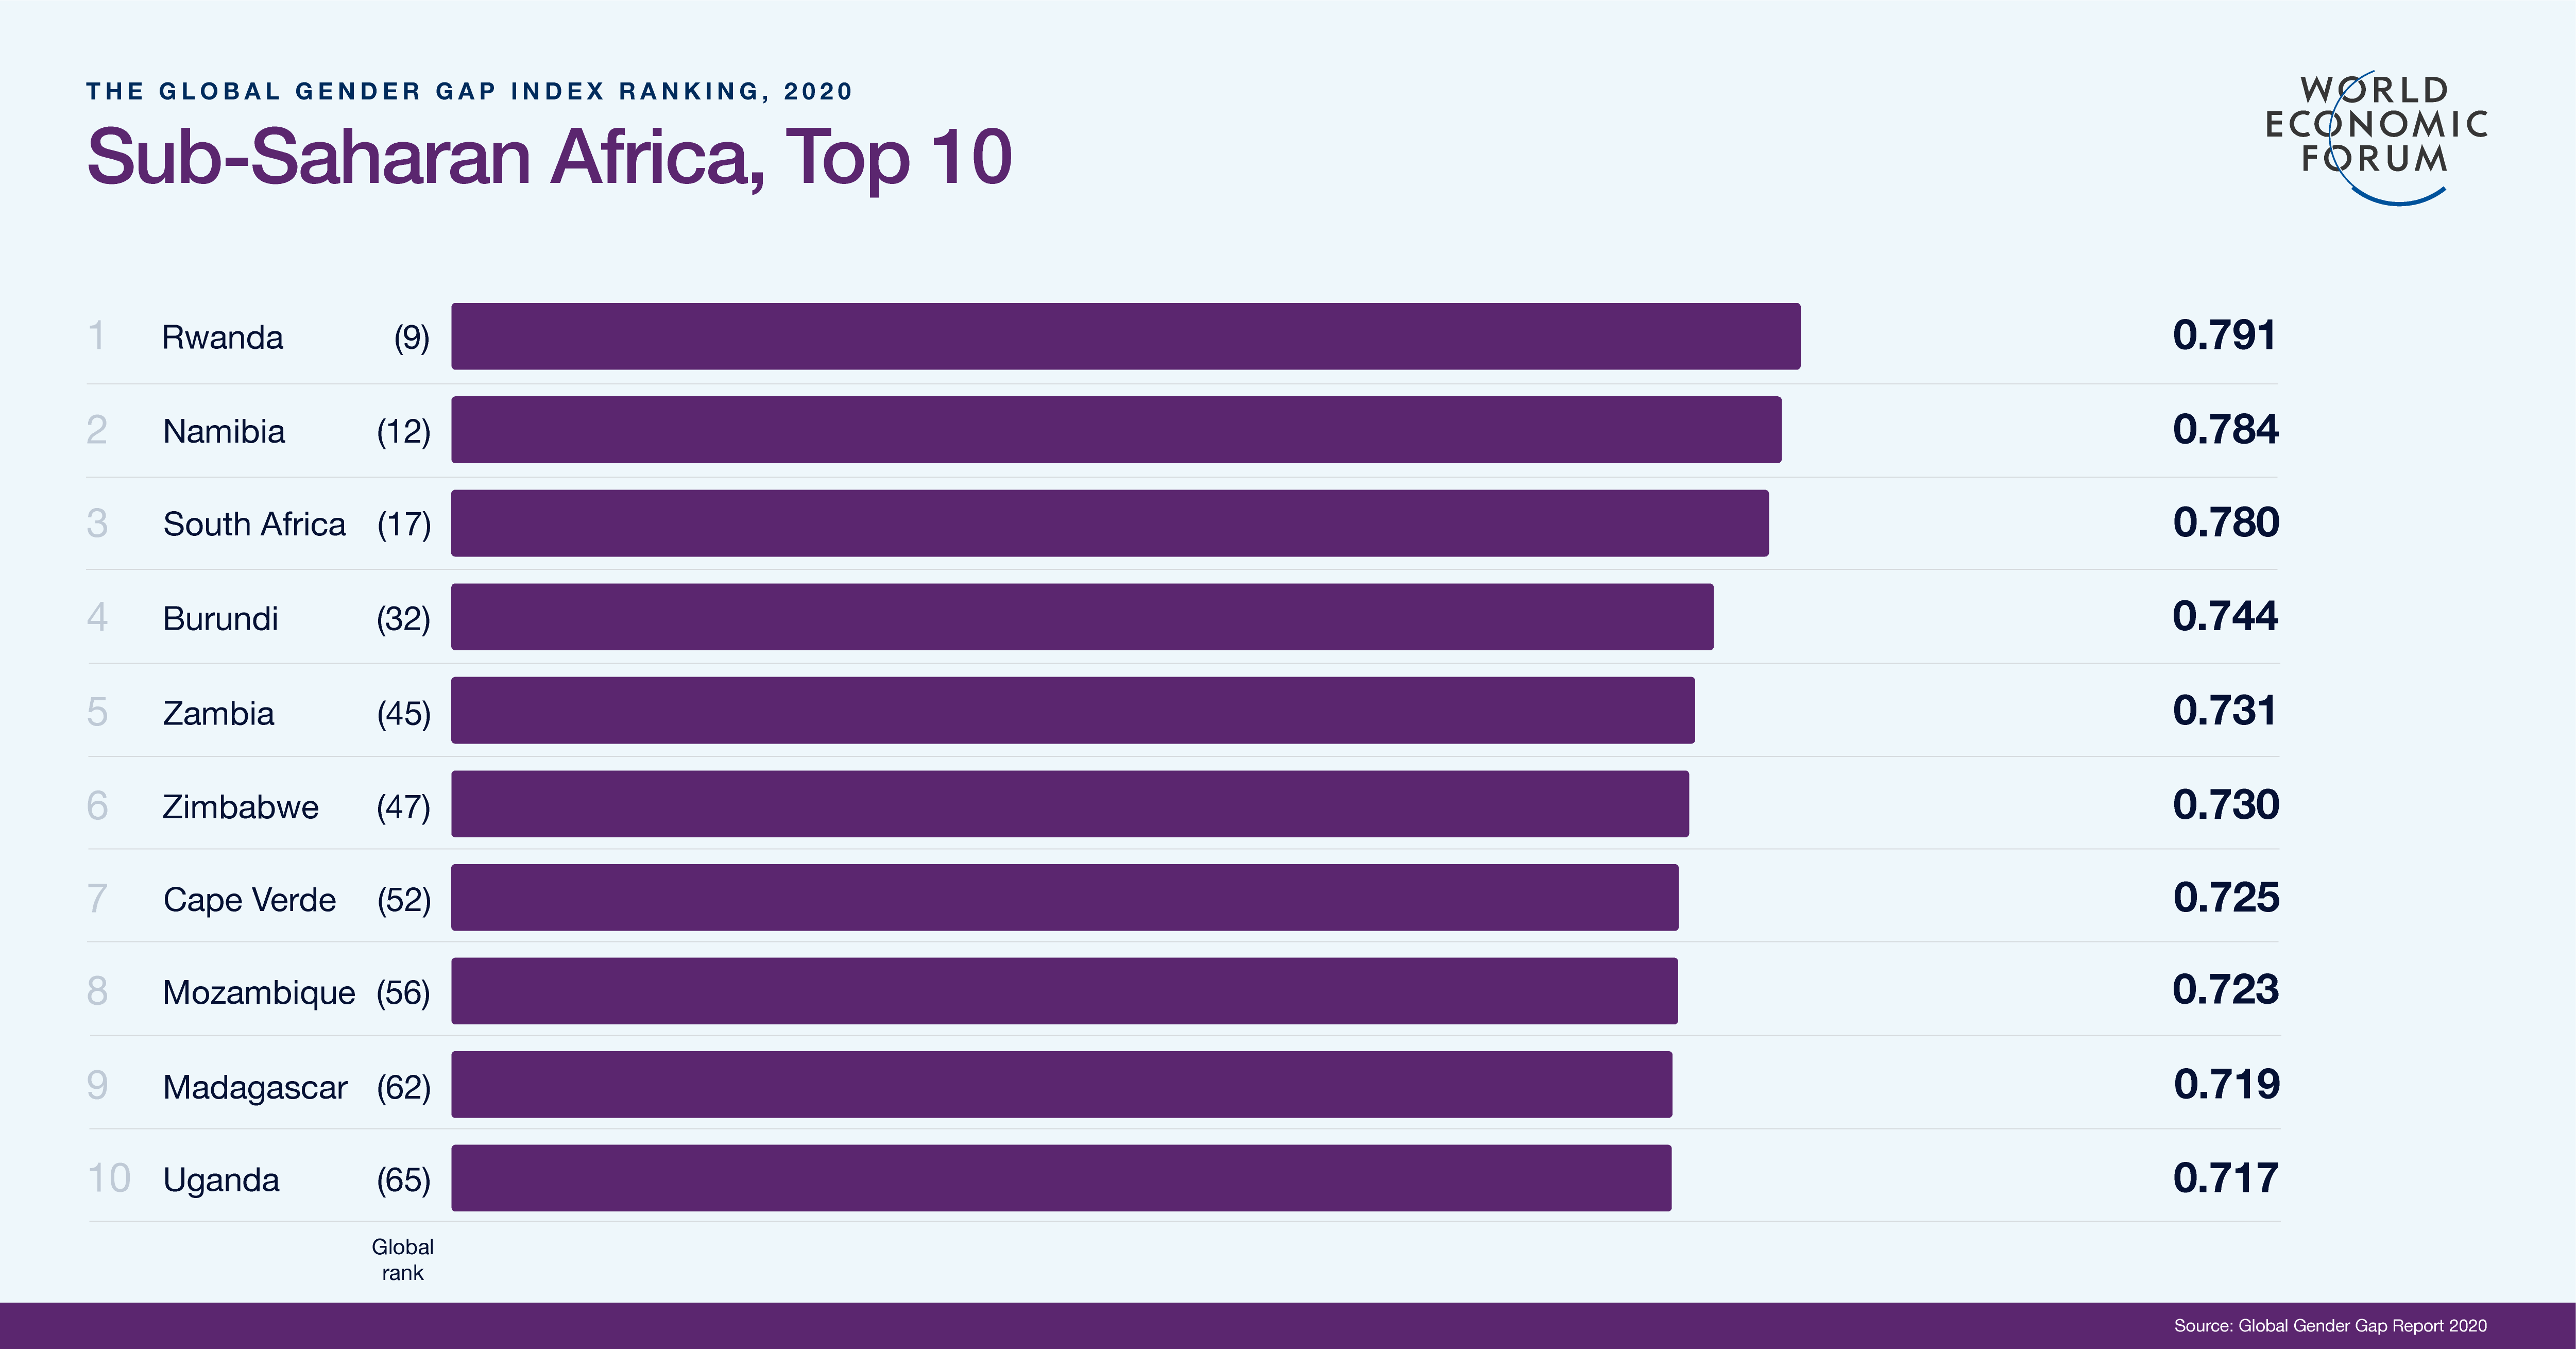 Sub-Saharan Africa Top 10 Rankings - Global Gender Gap Report 2020